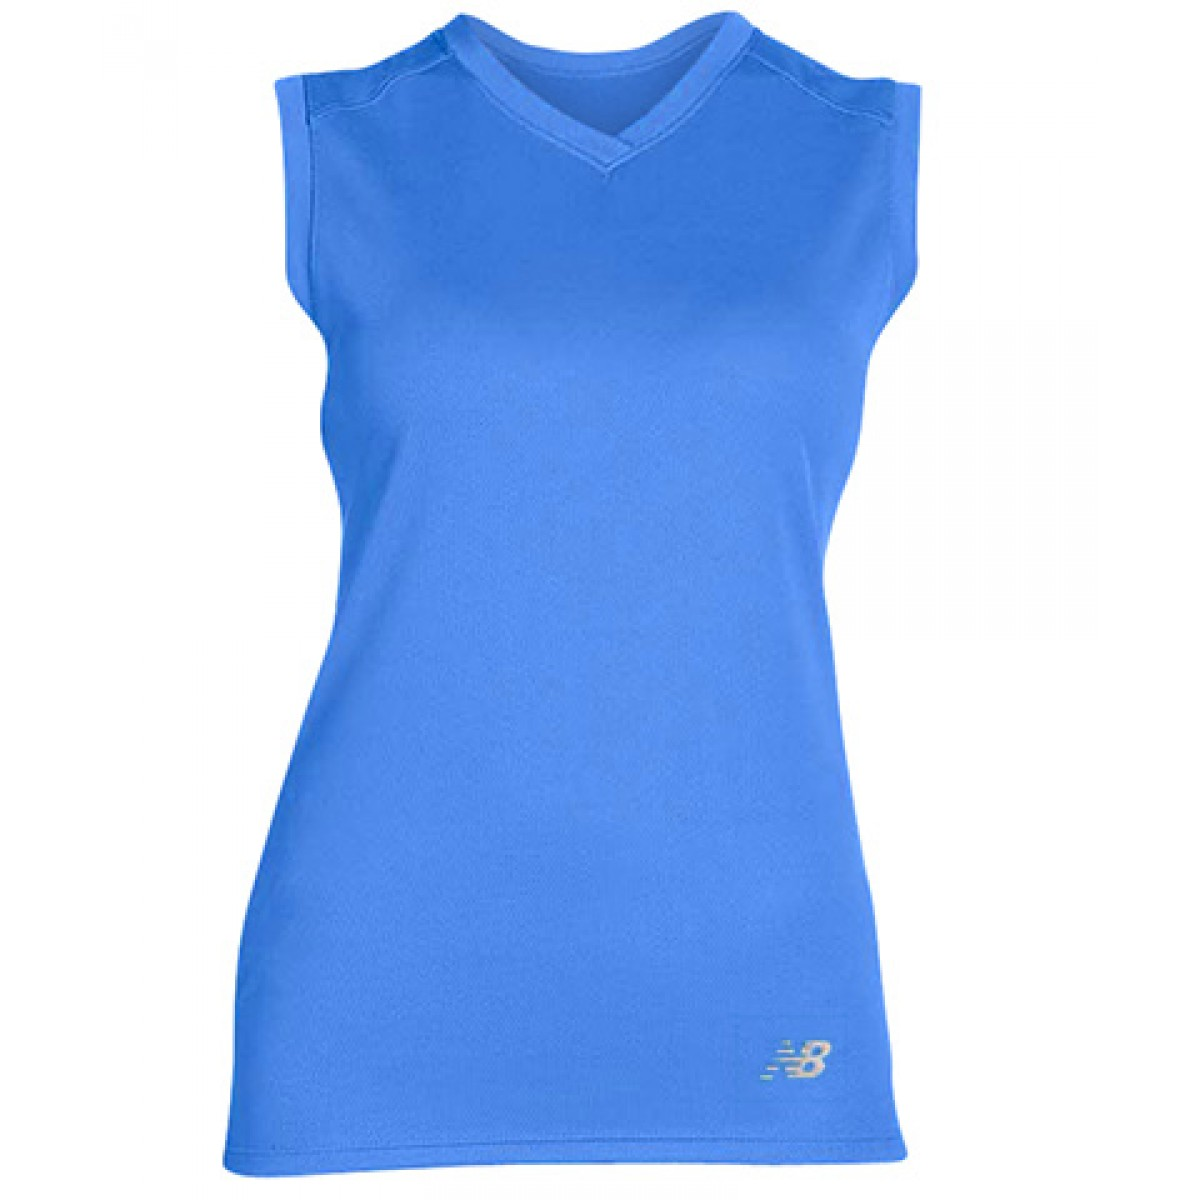 Ladies' Athletic V-Neck Performance T-Shirt